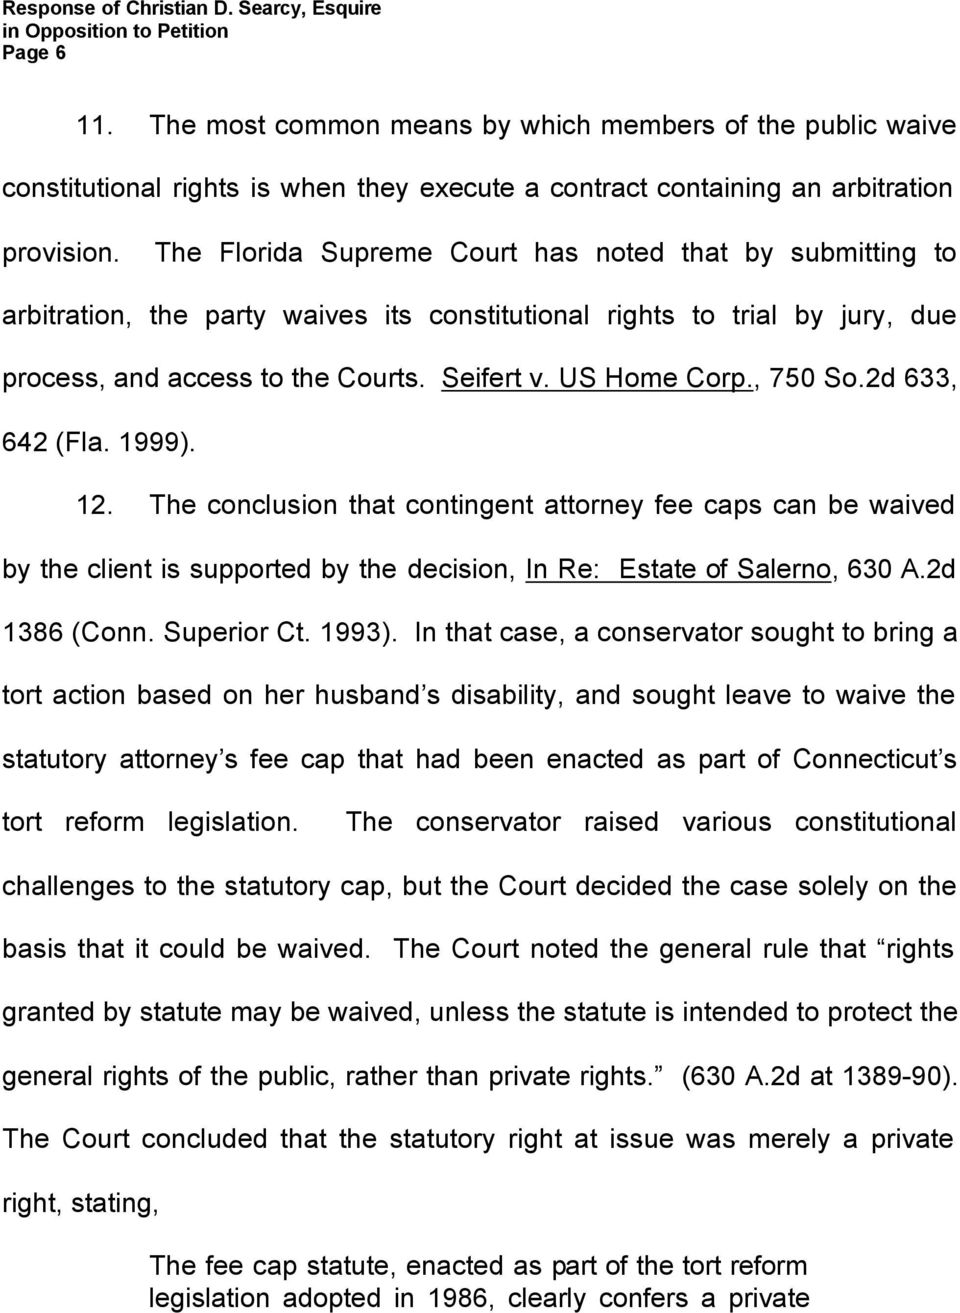 , 750 So.2d 633, 642 (Fla. 1999). 12. The conclusion that contingent attorney fee caps can be waived by the client is supported by the decision, In Re: Estate of Salerno, 630 A.2d 1386 (Conn.